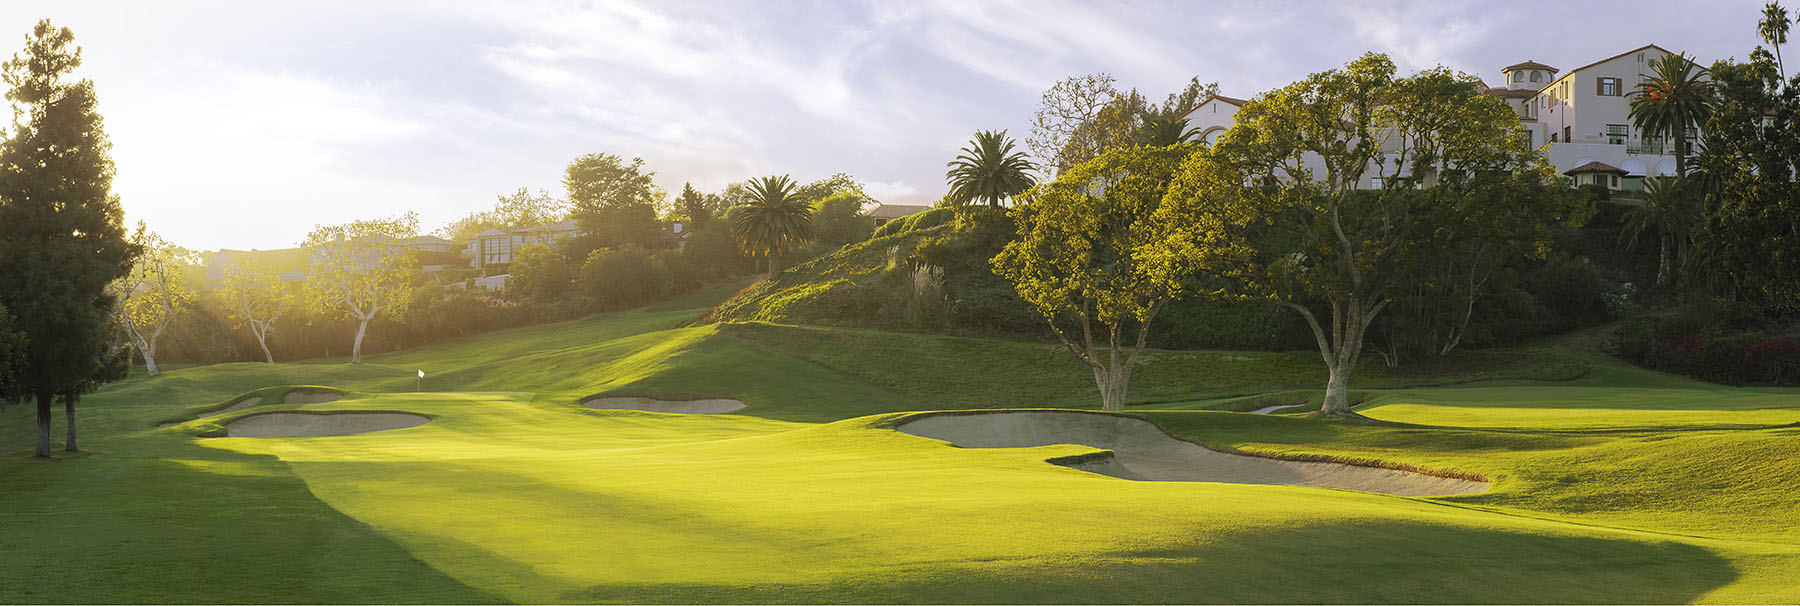 Golf Course Image - Riviera Country Club No. 2